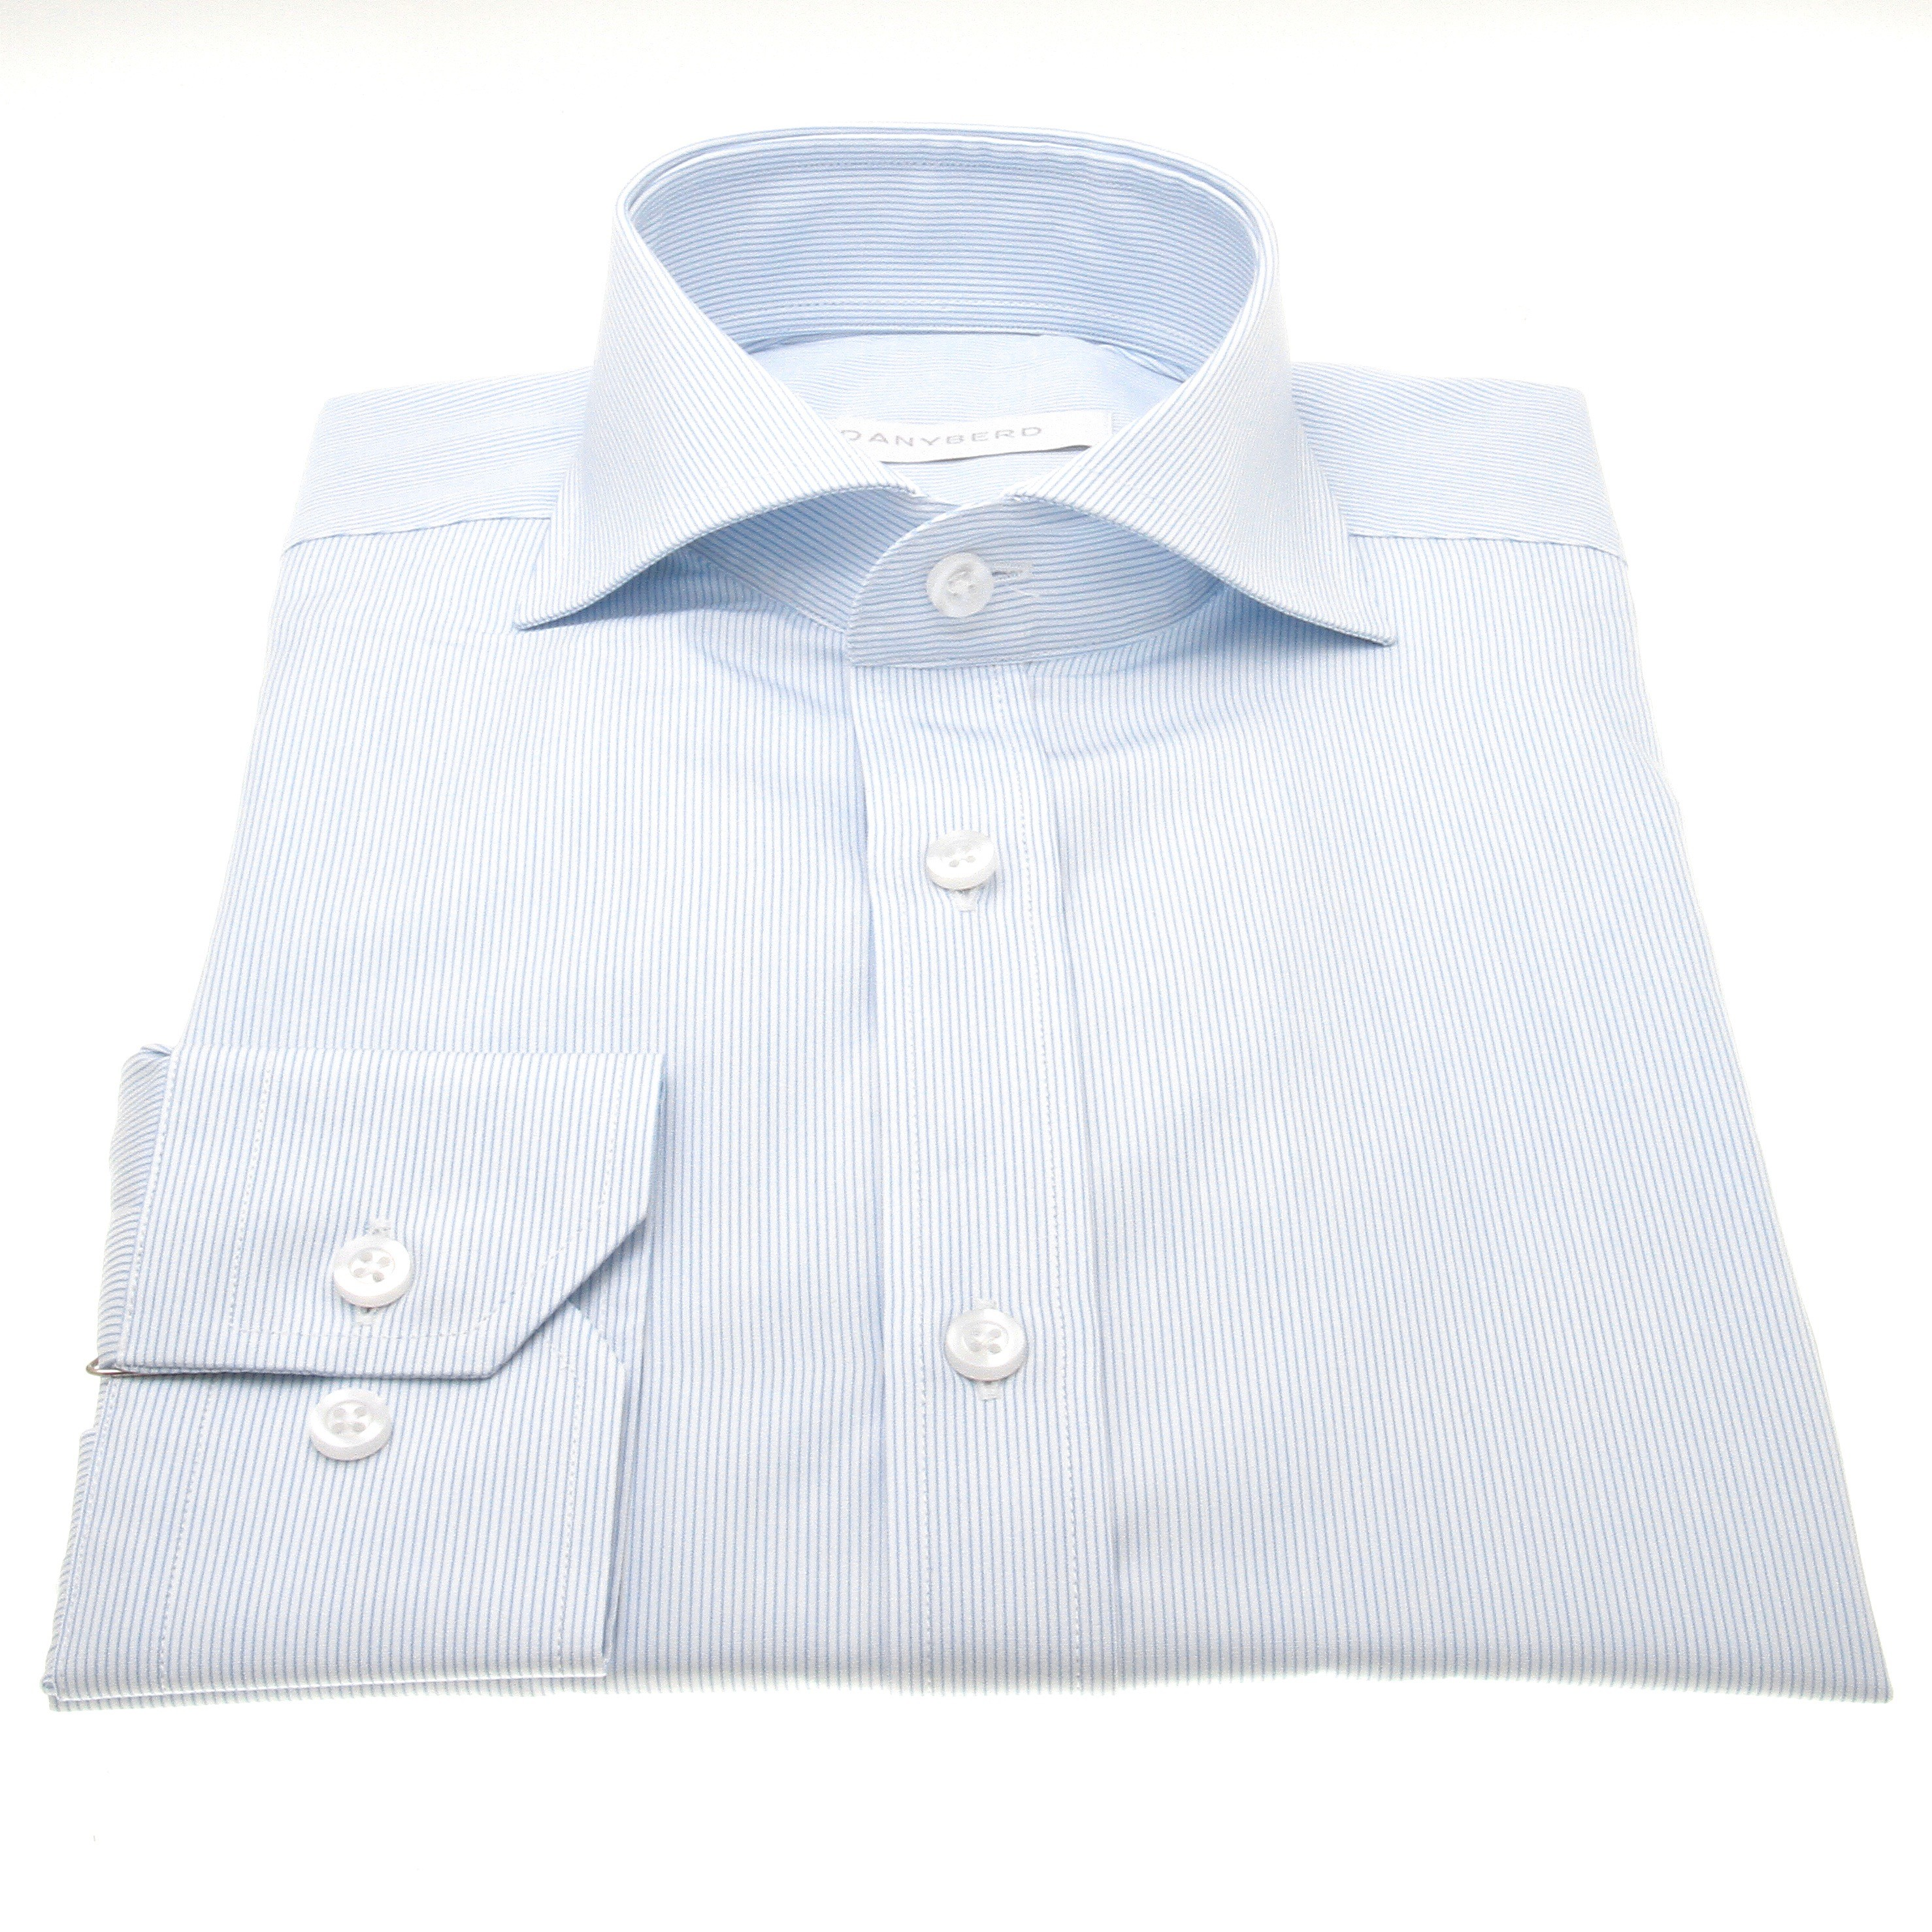 Chemise Reims : rayures blanches et bleues - Col Italien (ShirtsChemise Reims : Rayures - Slim-cut - Col Italien (Shirts